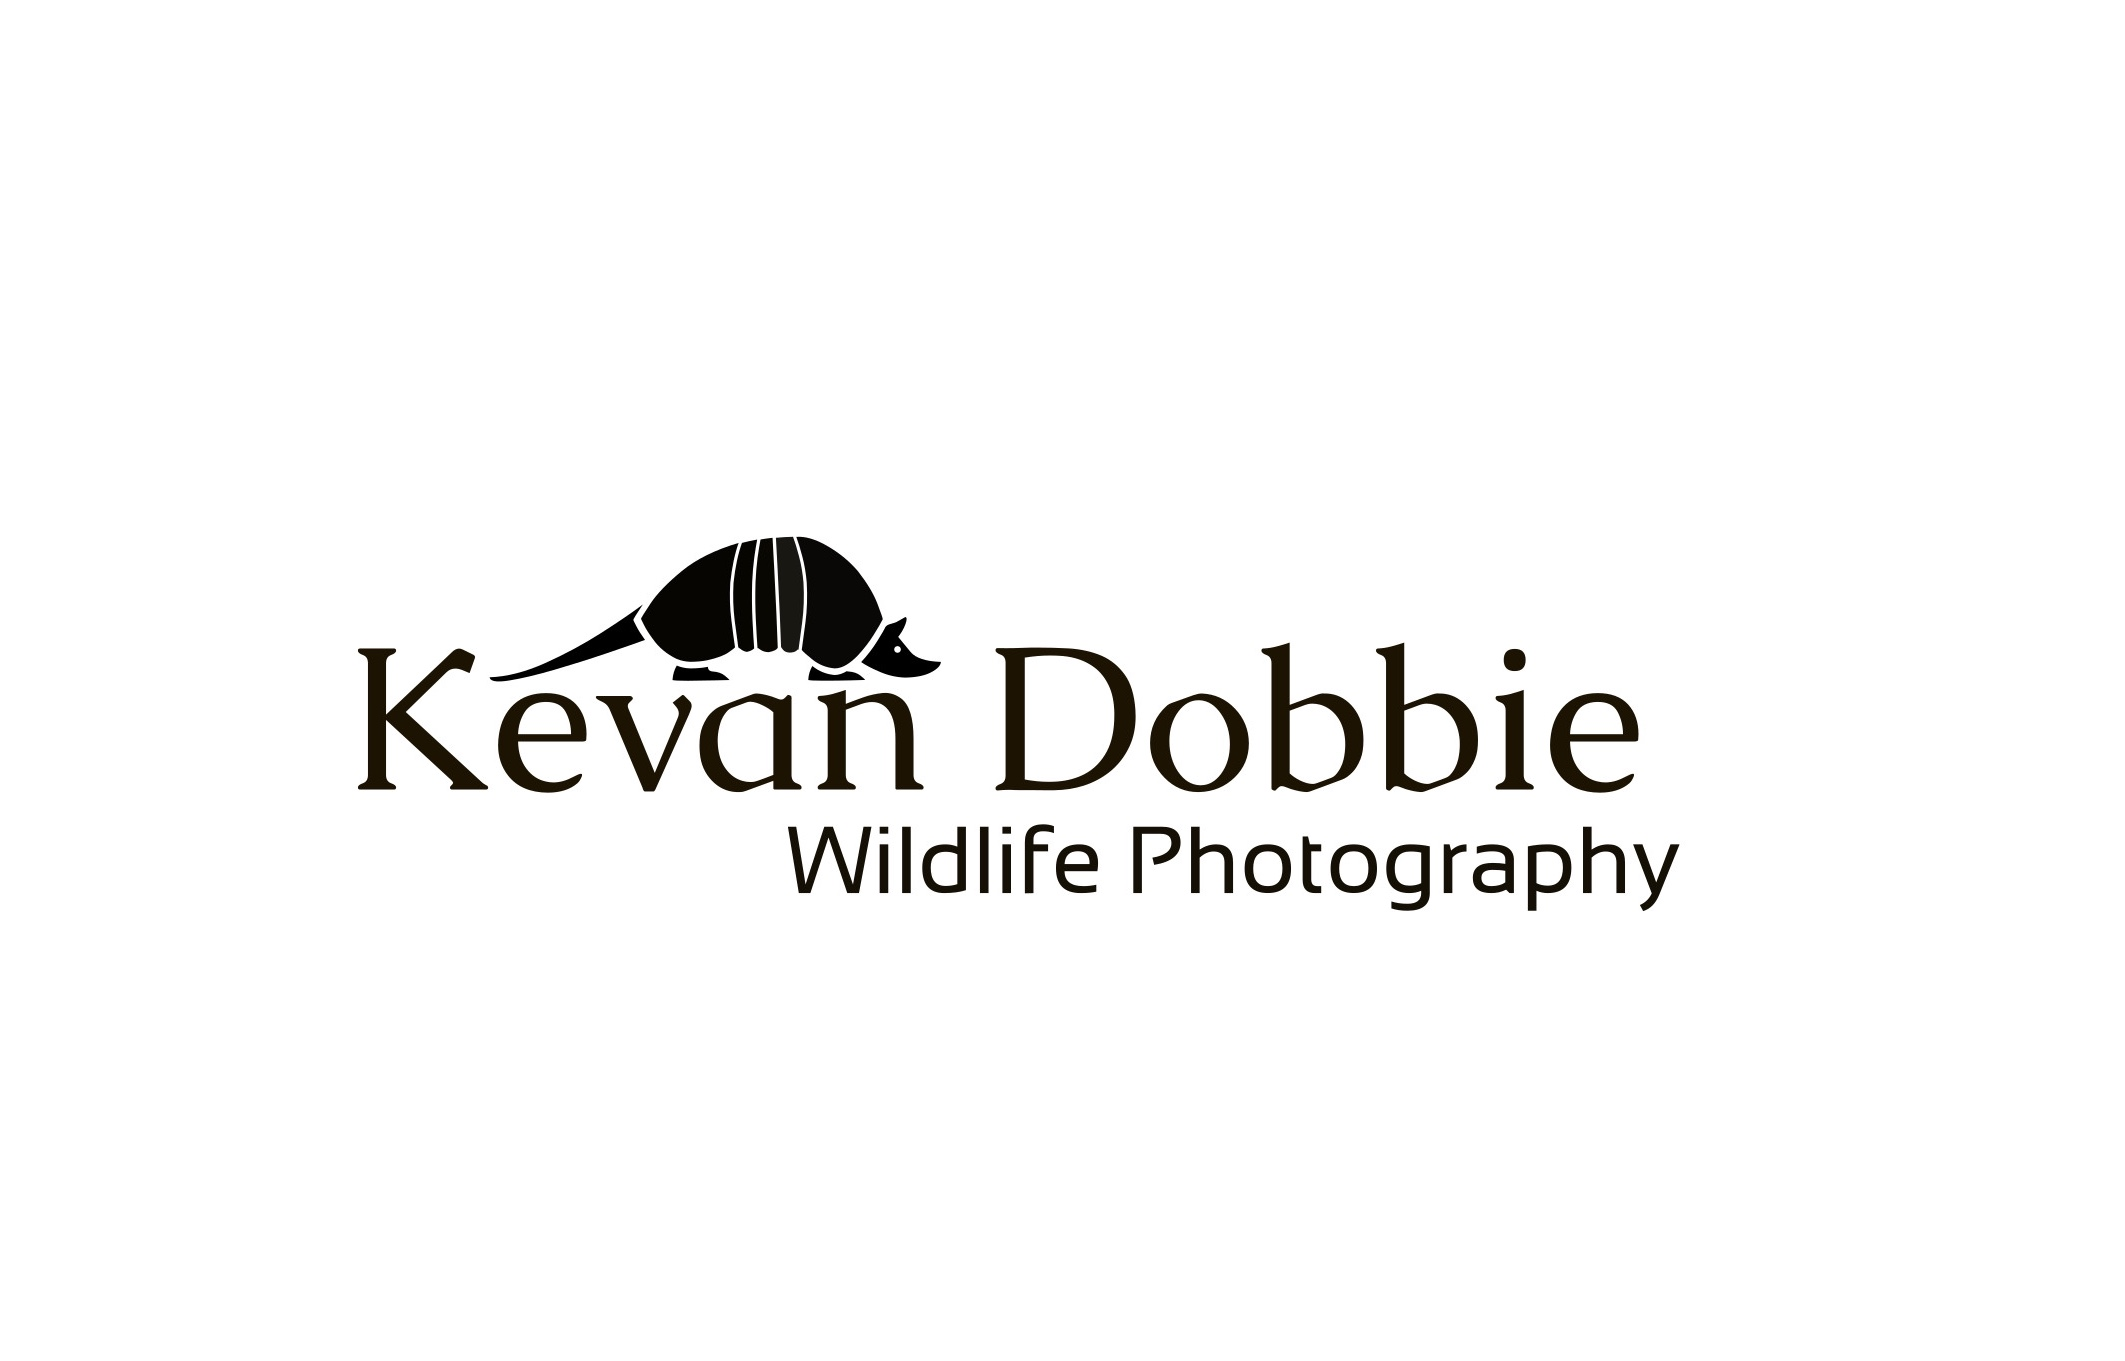 Kevan Dobbie Wildlife Photography